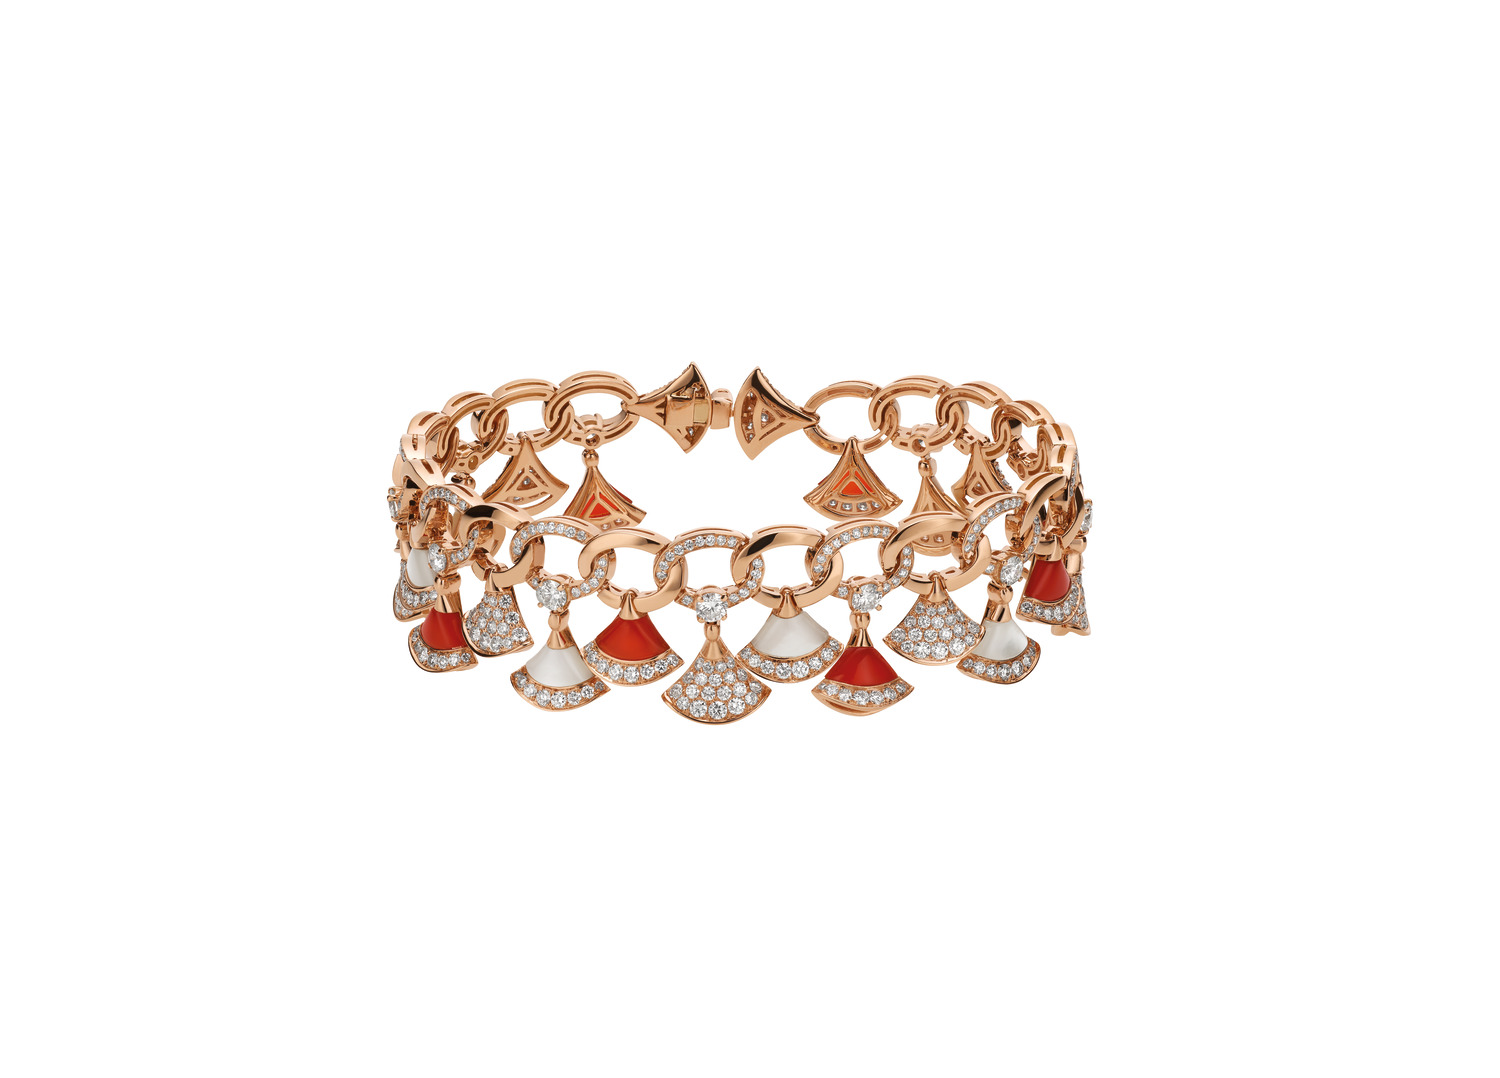 BVLGARI DIVAS' DREAM bracelet in 18 kt rose gold